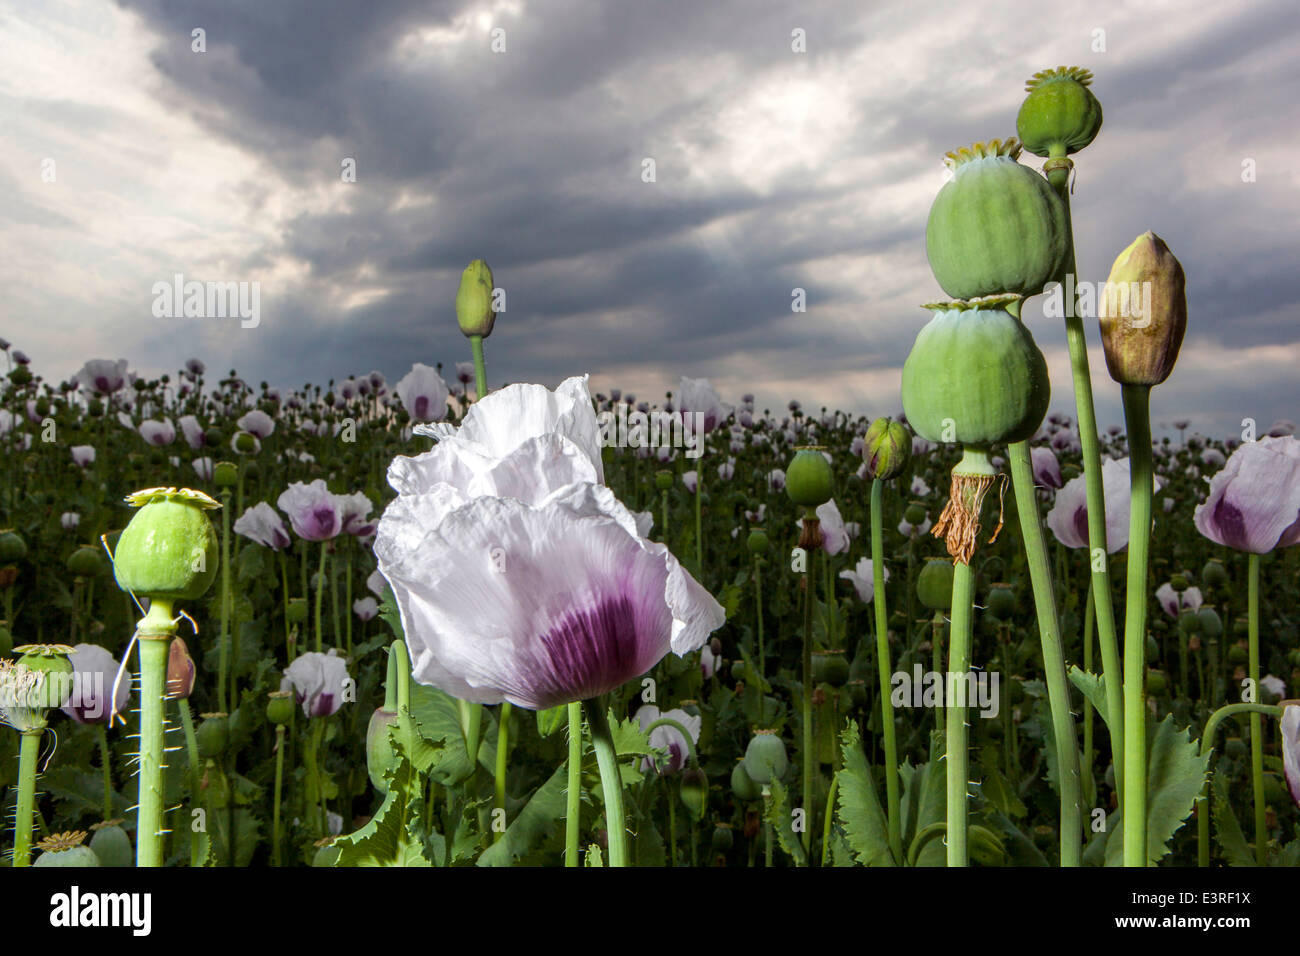 Papaver somniferum, the Opium poppy Stock Photo